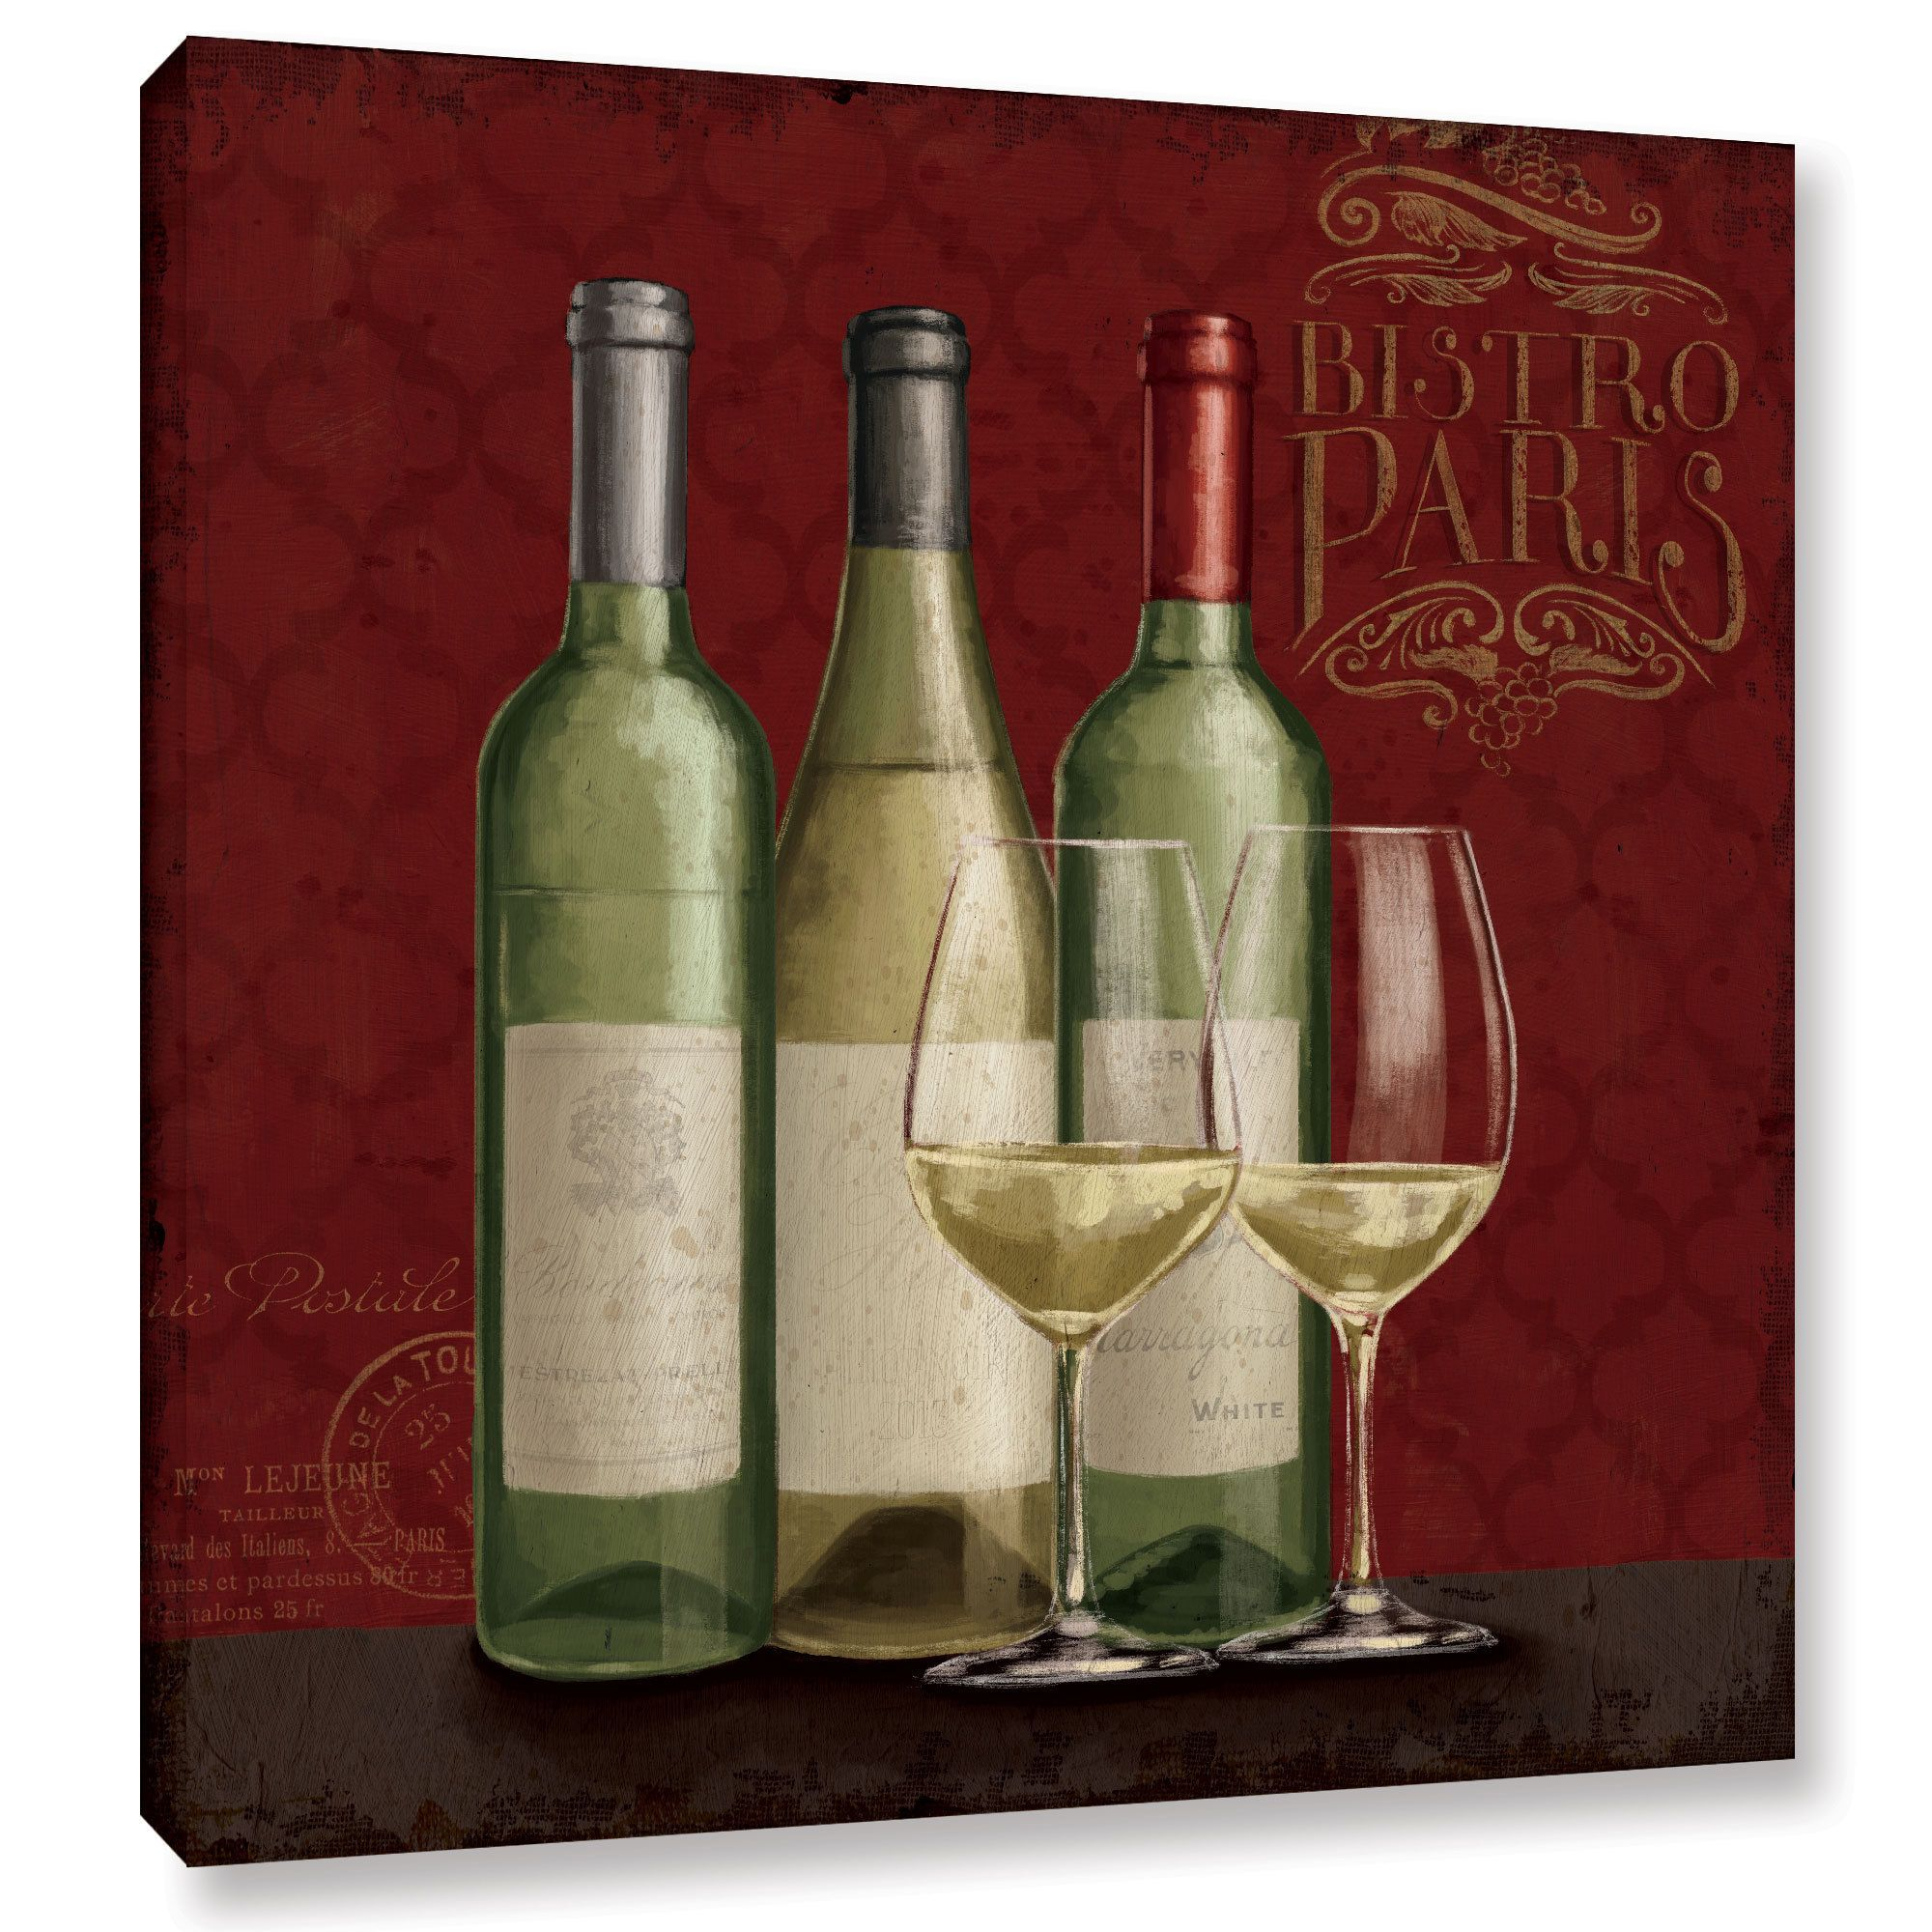 Janelle Penner S Bistro Paris White Wine V2 Gallery Wrapped Canvas White Wine Wine Painting Canvas Art